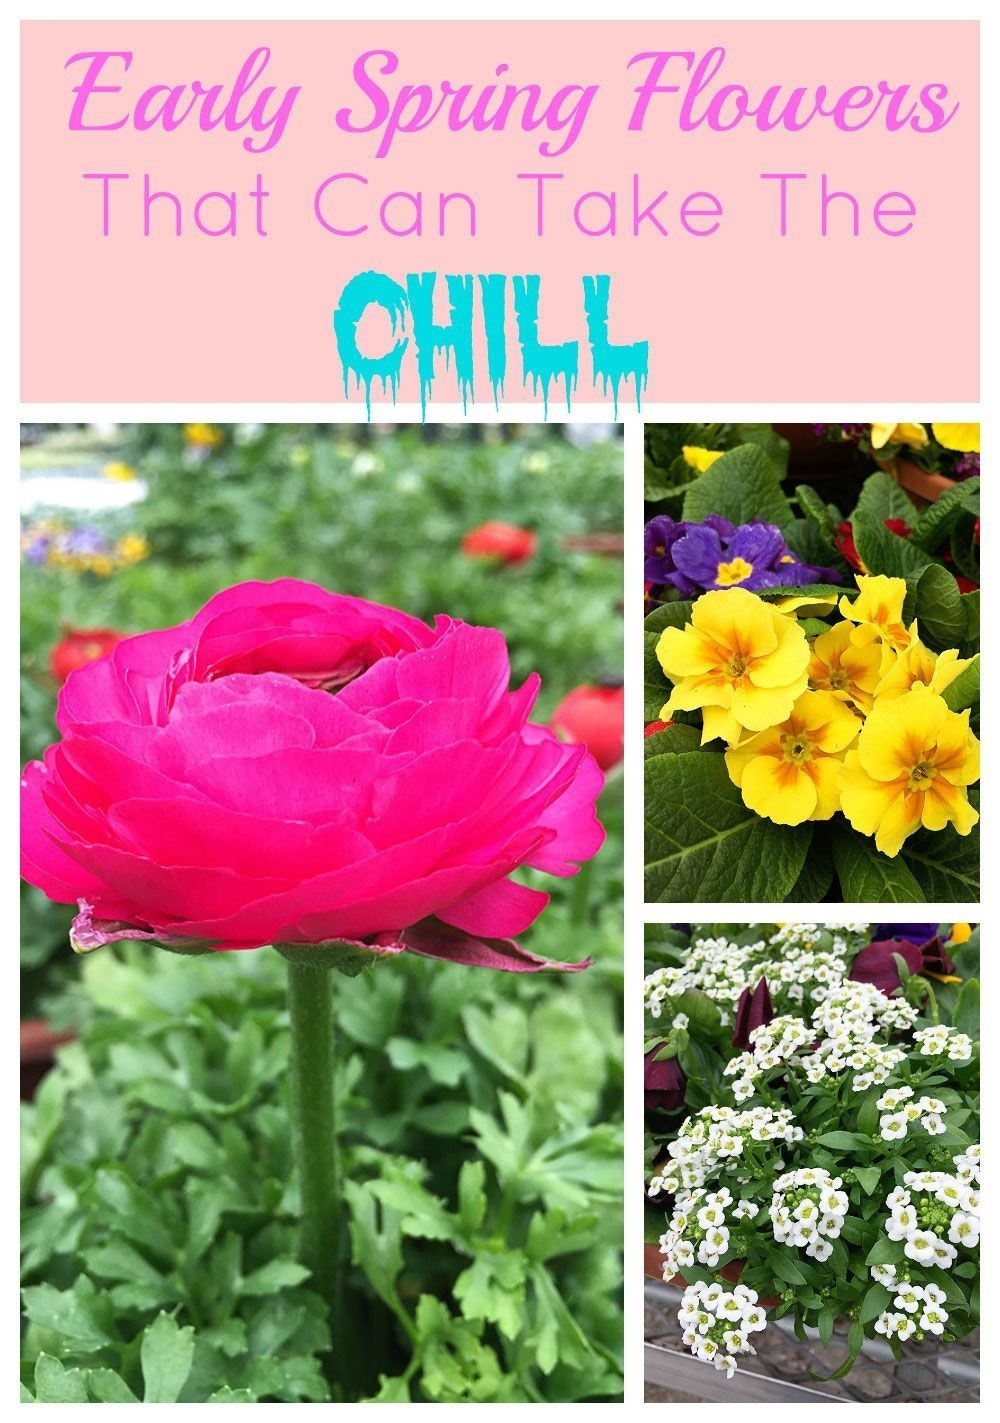 Early Spring Flowers That Can Take The Chill   Gardening Ideas for Garden Flowers To Plant Now